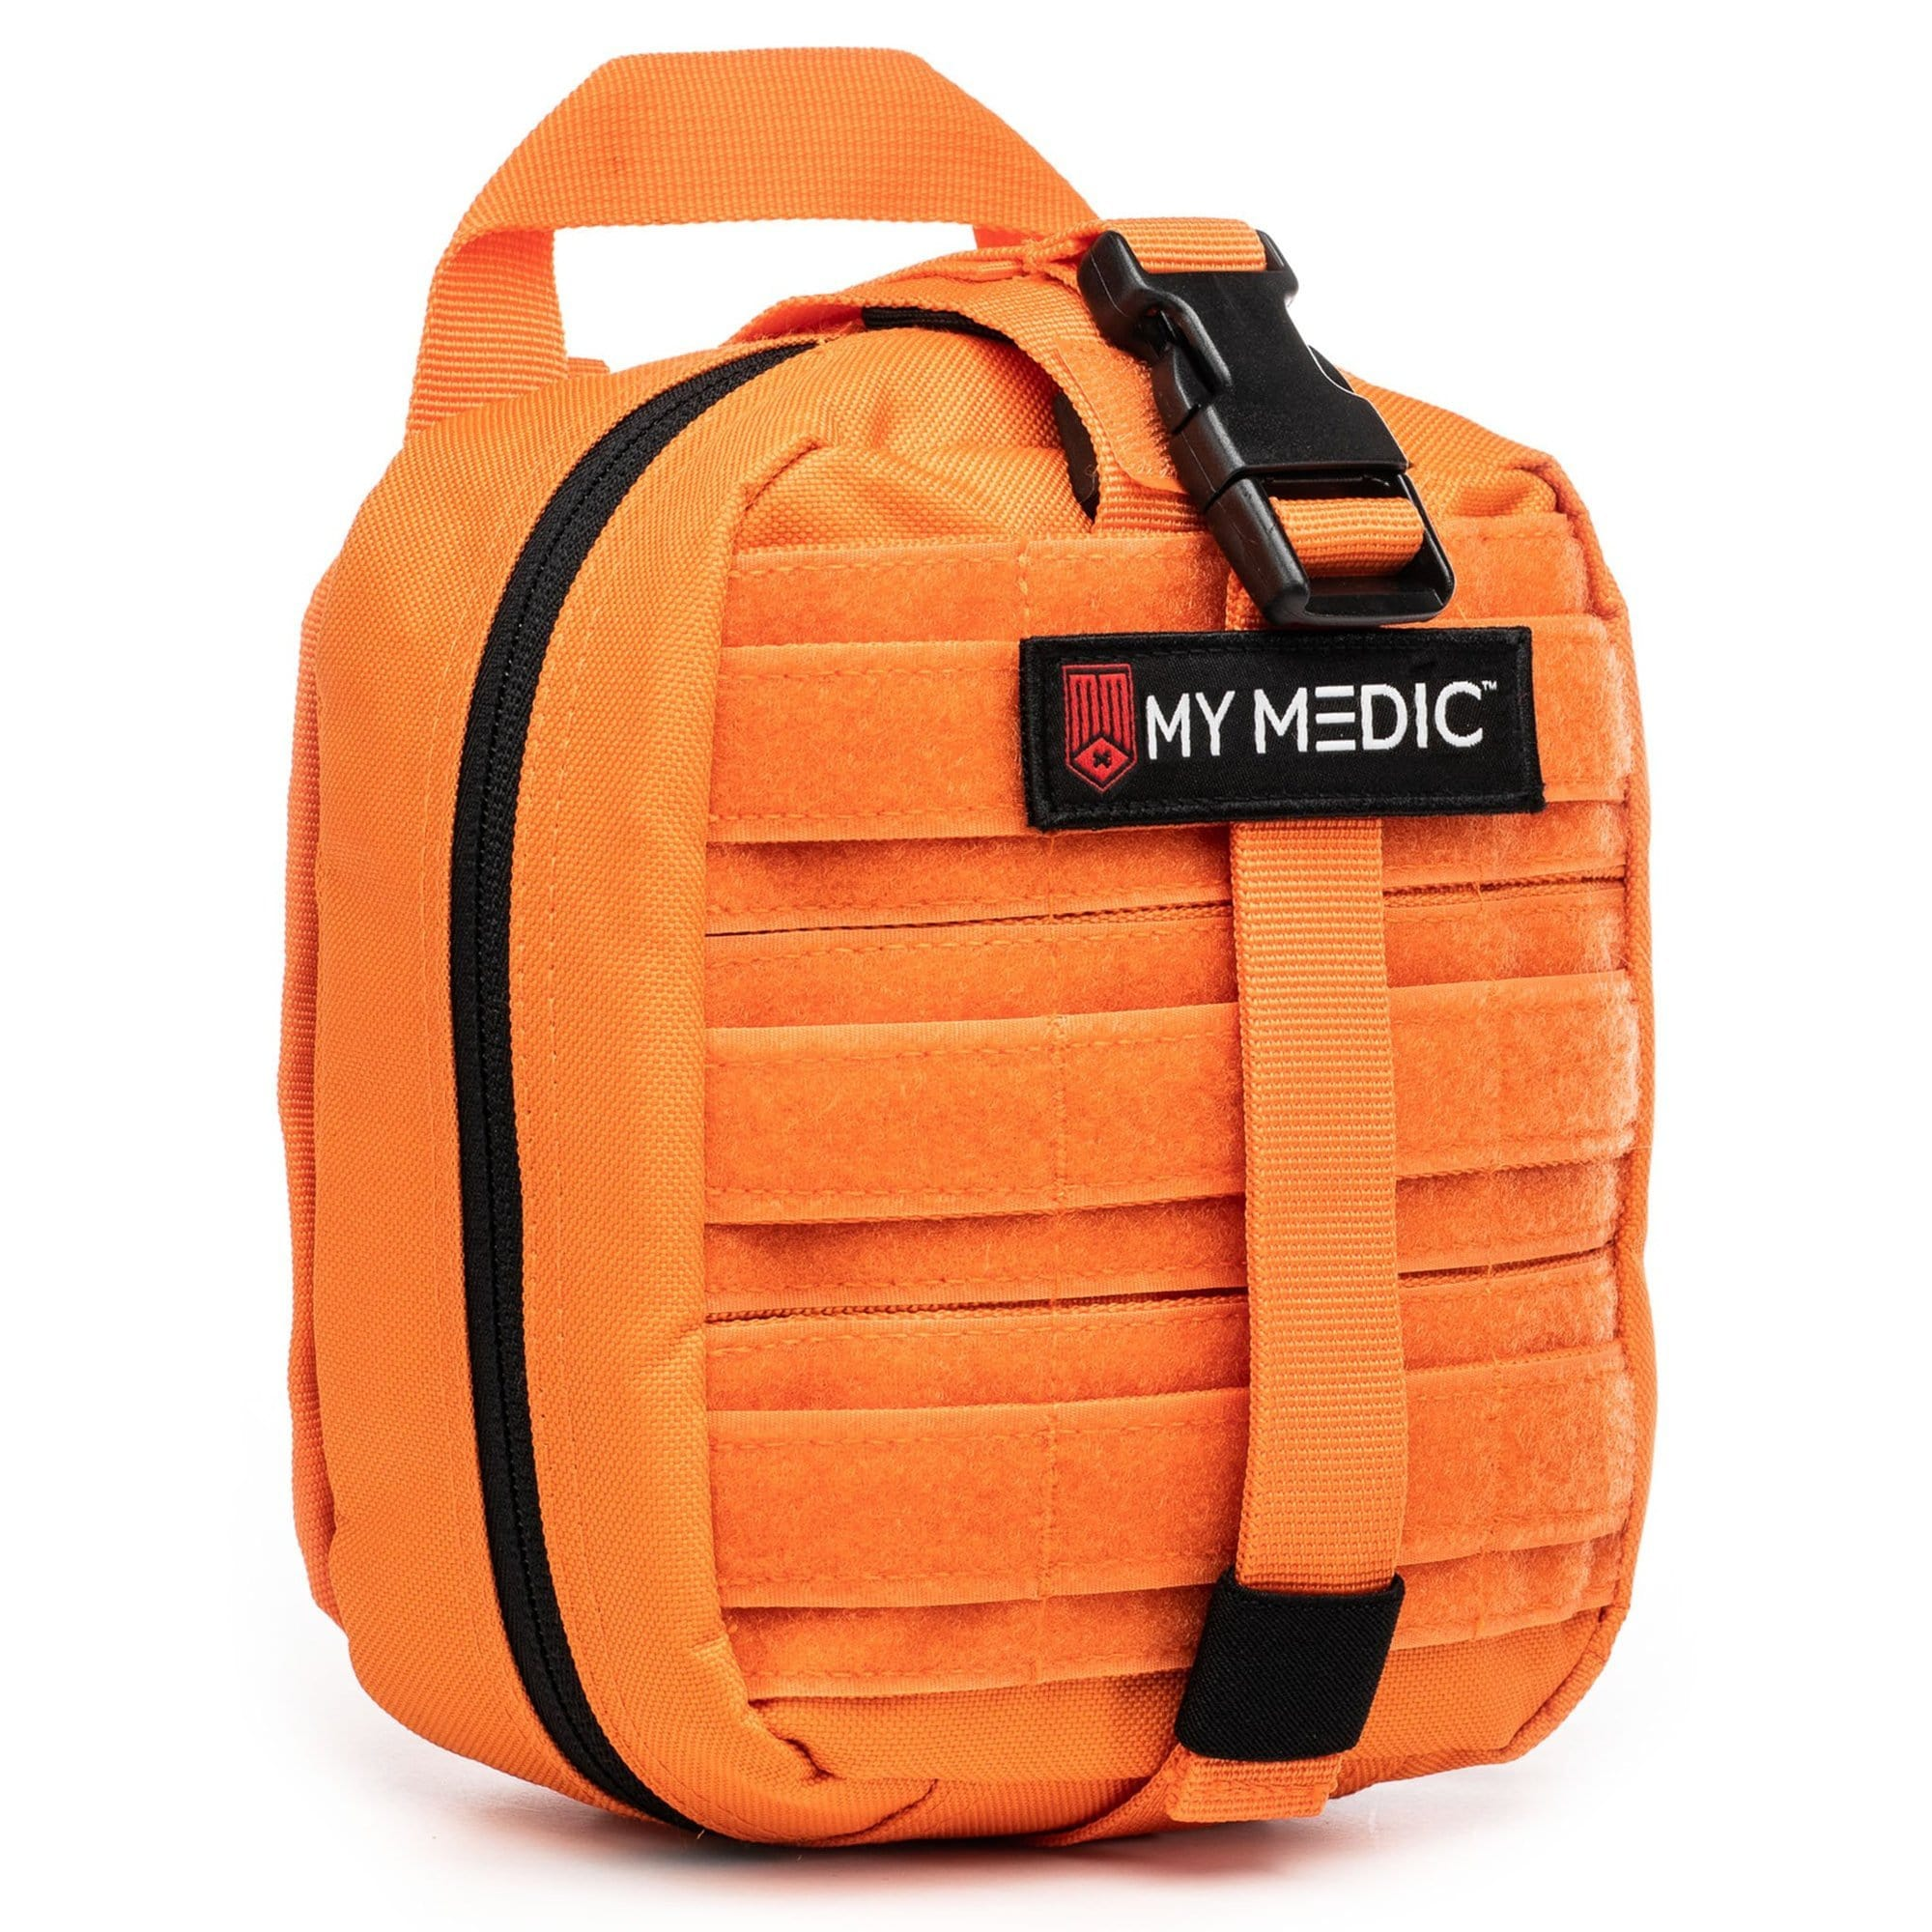 MyFAK: Basic Individual First Aid Kit [IFAK] by MyMedic (color: ORANGE)